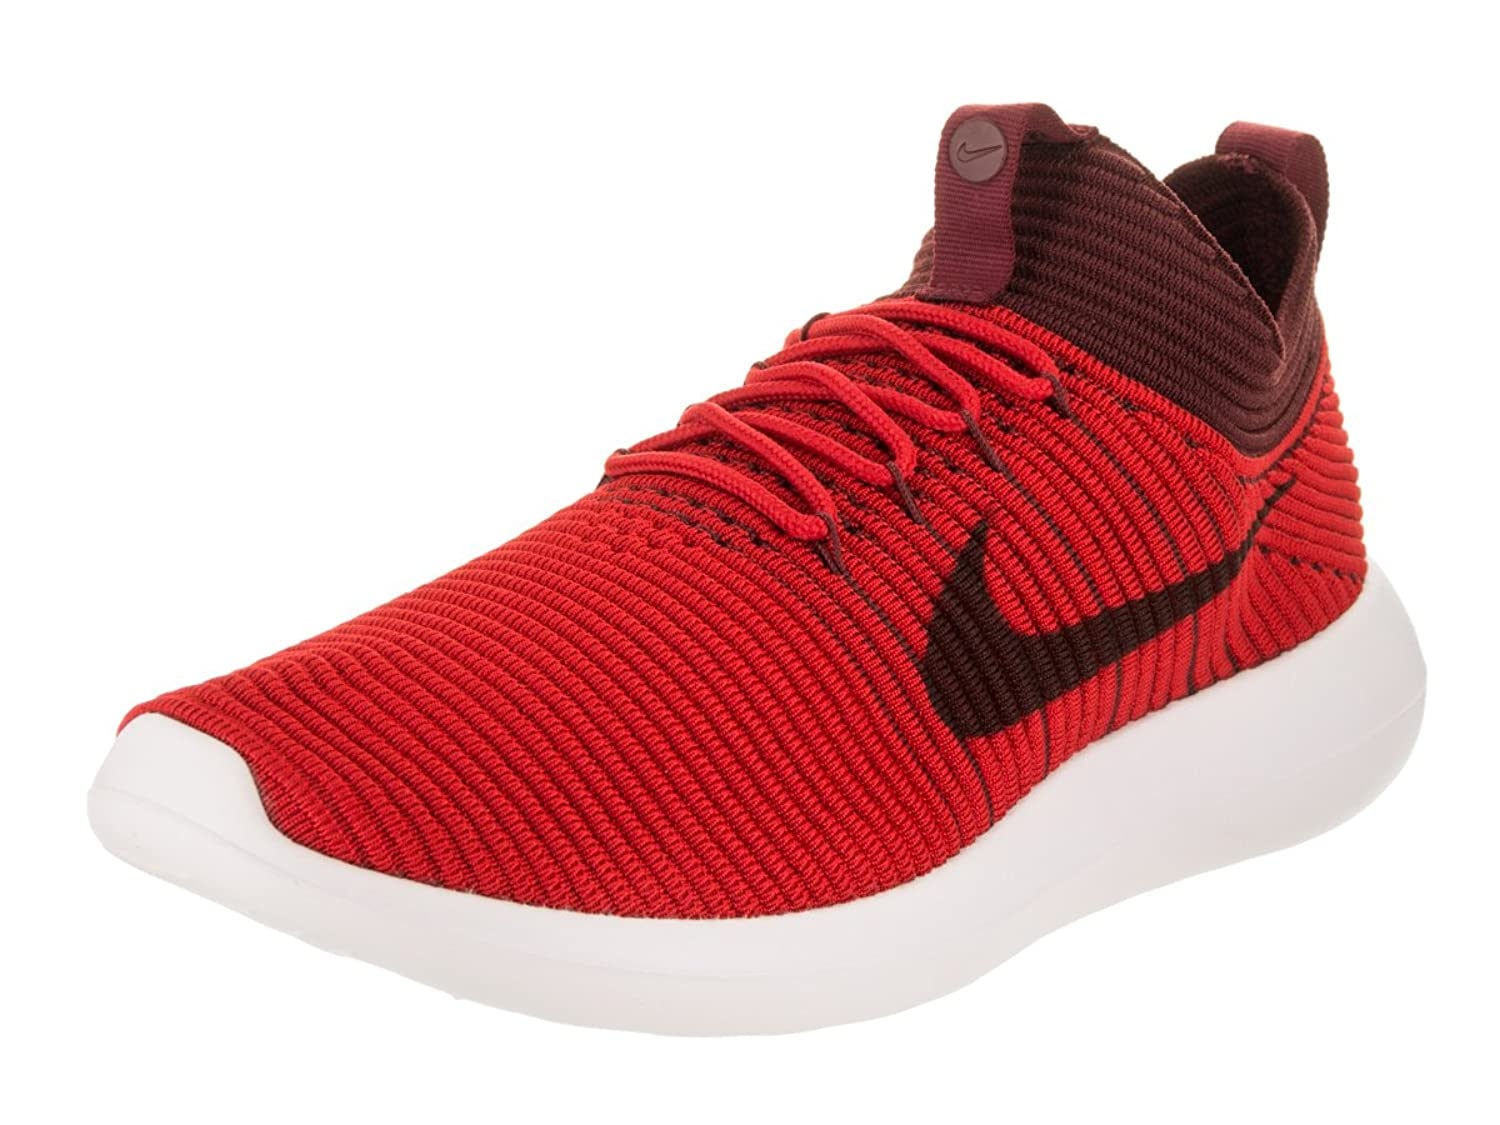 65f176db6154 Lightweight Flyknit constructed upper on the Nike Roshe Two Flyknit V2 for  a snug and adaptive fit. New molded sole with 3 densities of ...